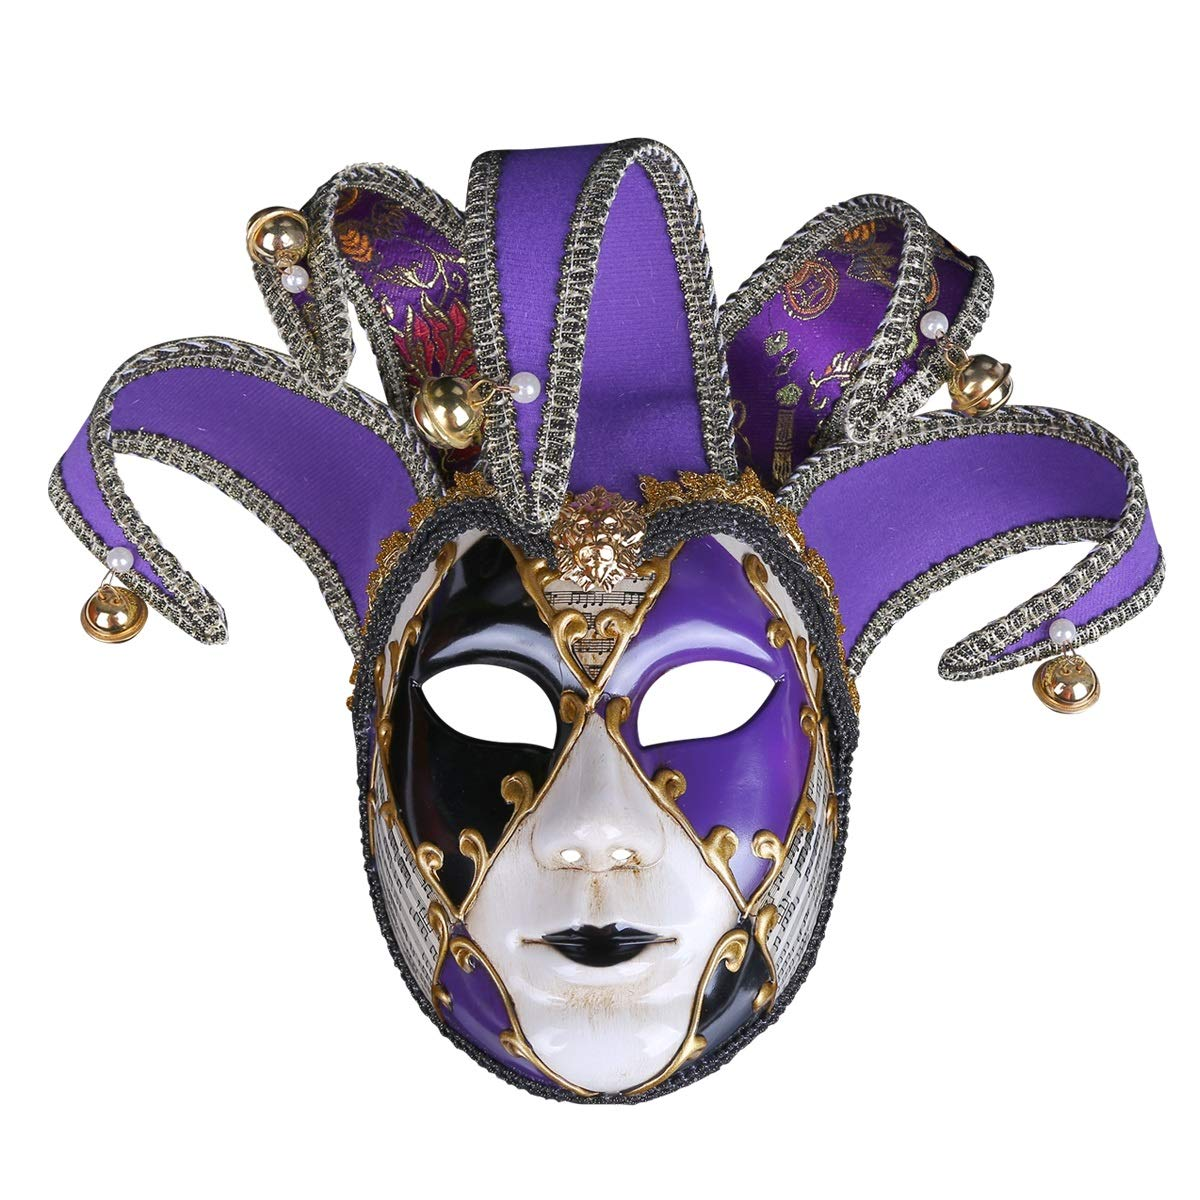 ZYLE-MASK European and American Painted Halloween Masks, Prom Party Masks Upscale Venice Performance Masks for Ladies (Color : Purple)